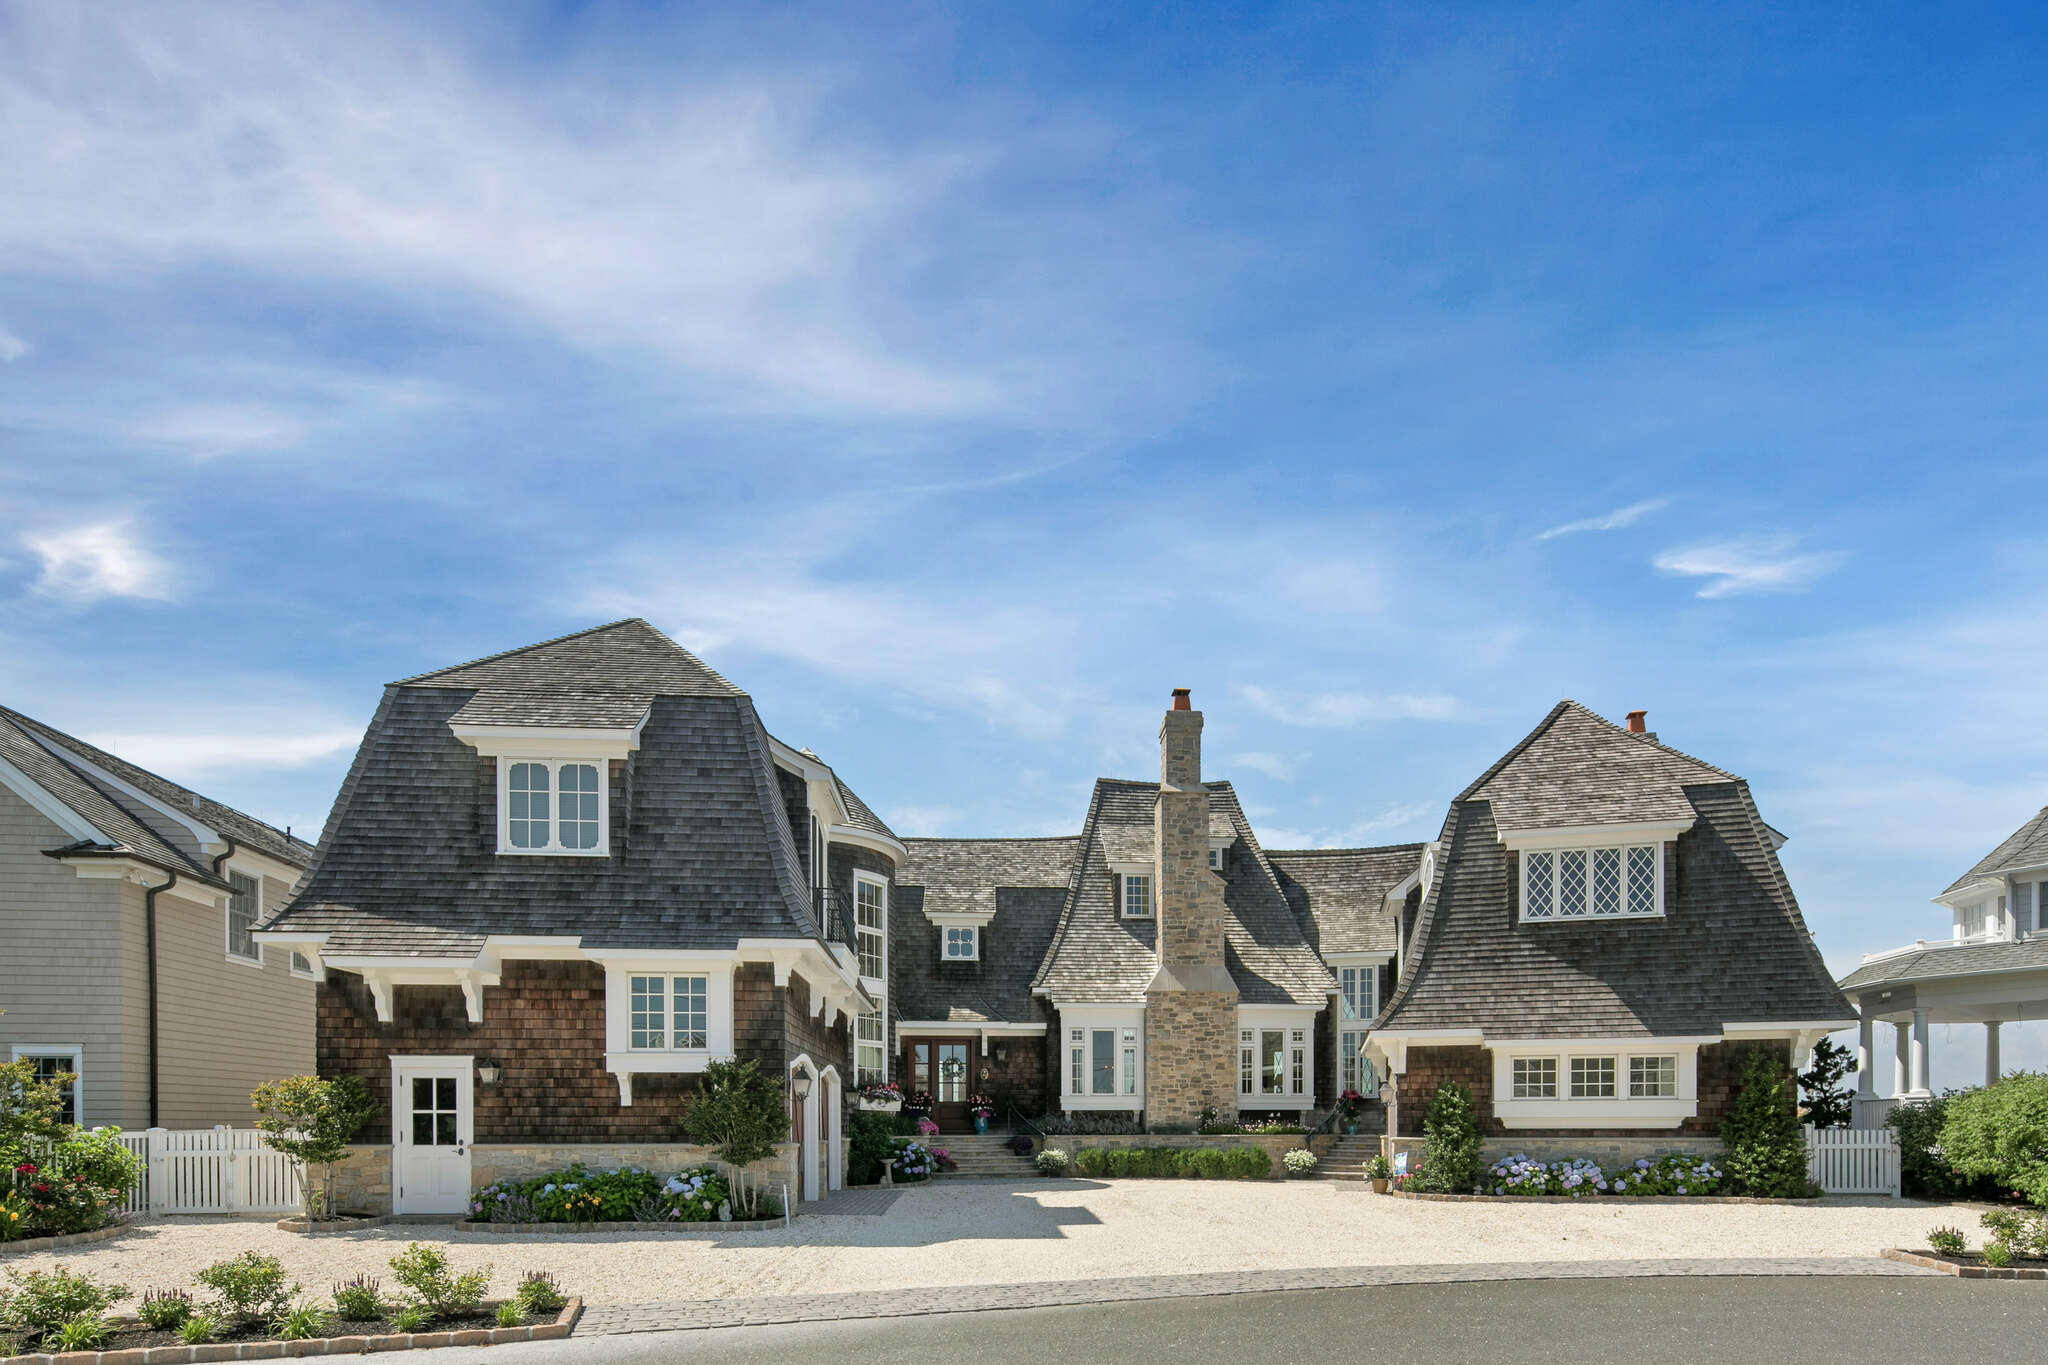 Single Family for Sale at 459 Normandy Drive Normandy Beach, New Jersey 08739 United States